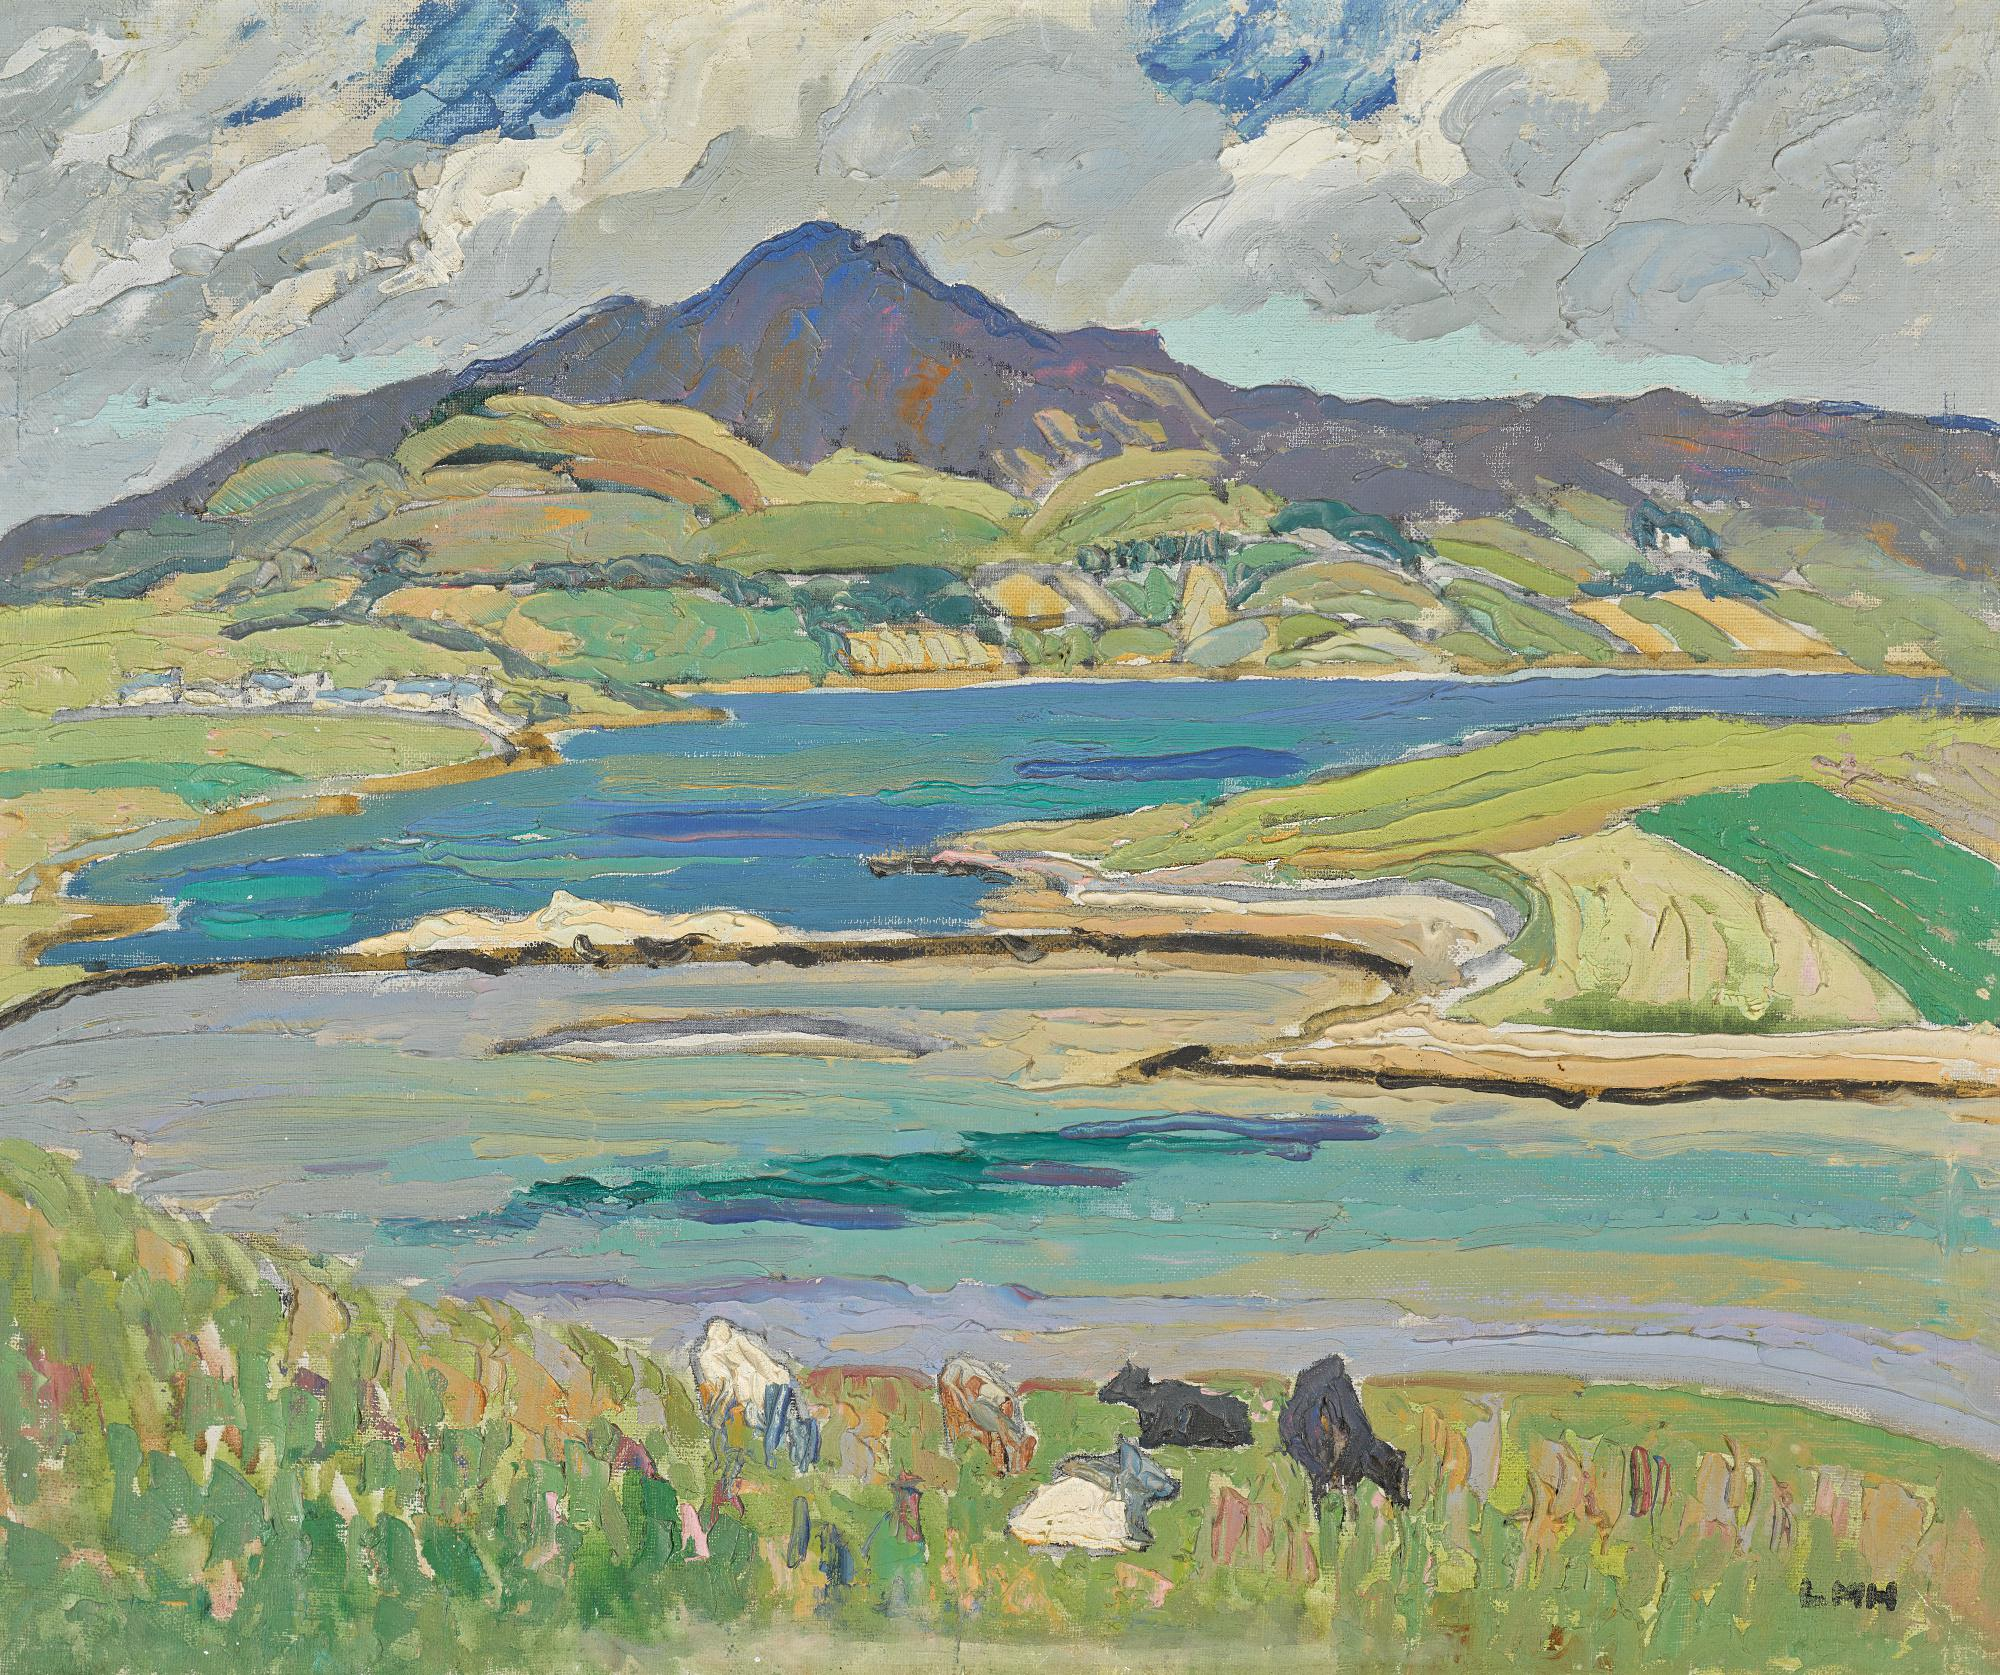 LETITIA MARION HAMILTON, R.H.A. | CARRYGART, CO. DONEGAL, ERRIGAL MOUNTAIN IN THE DISTANCE